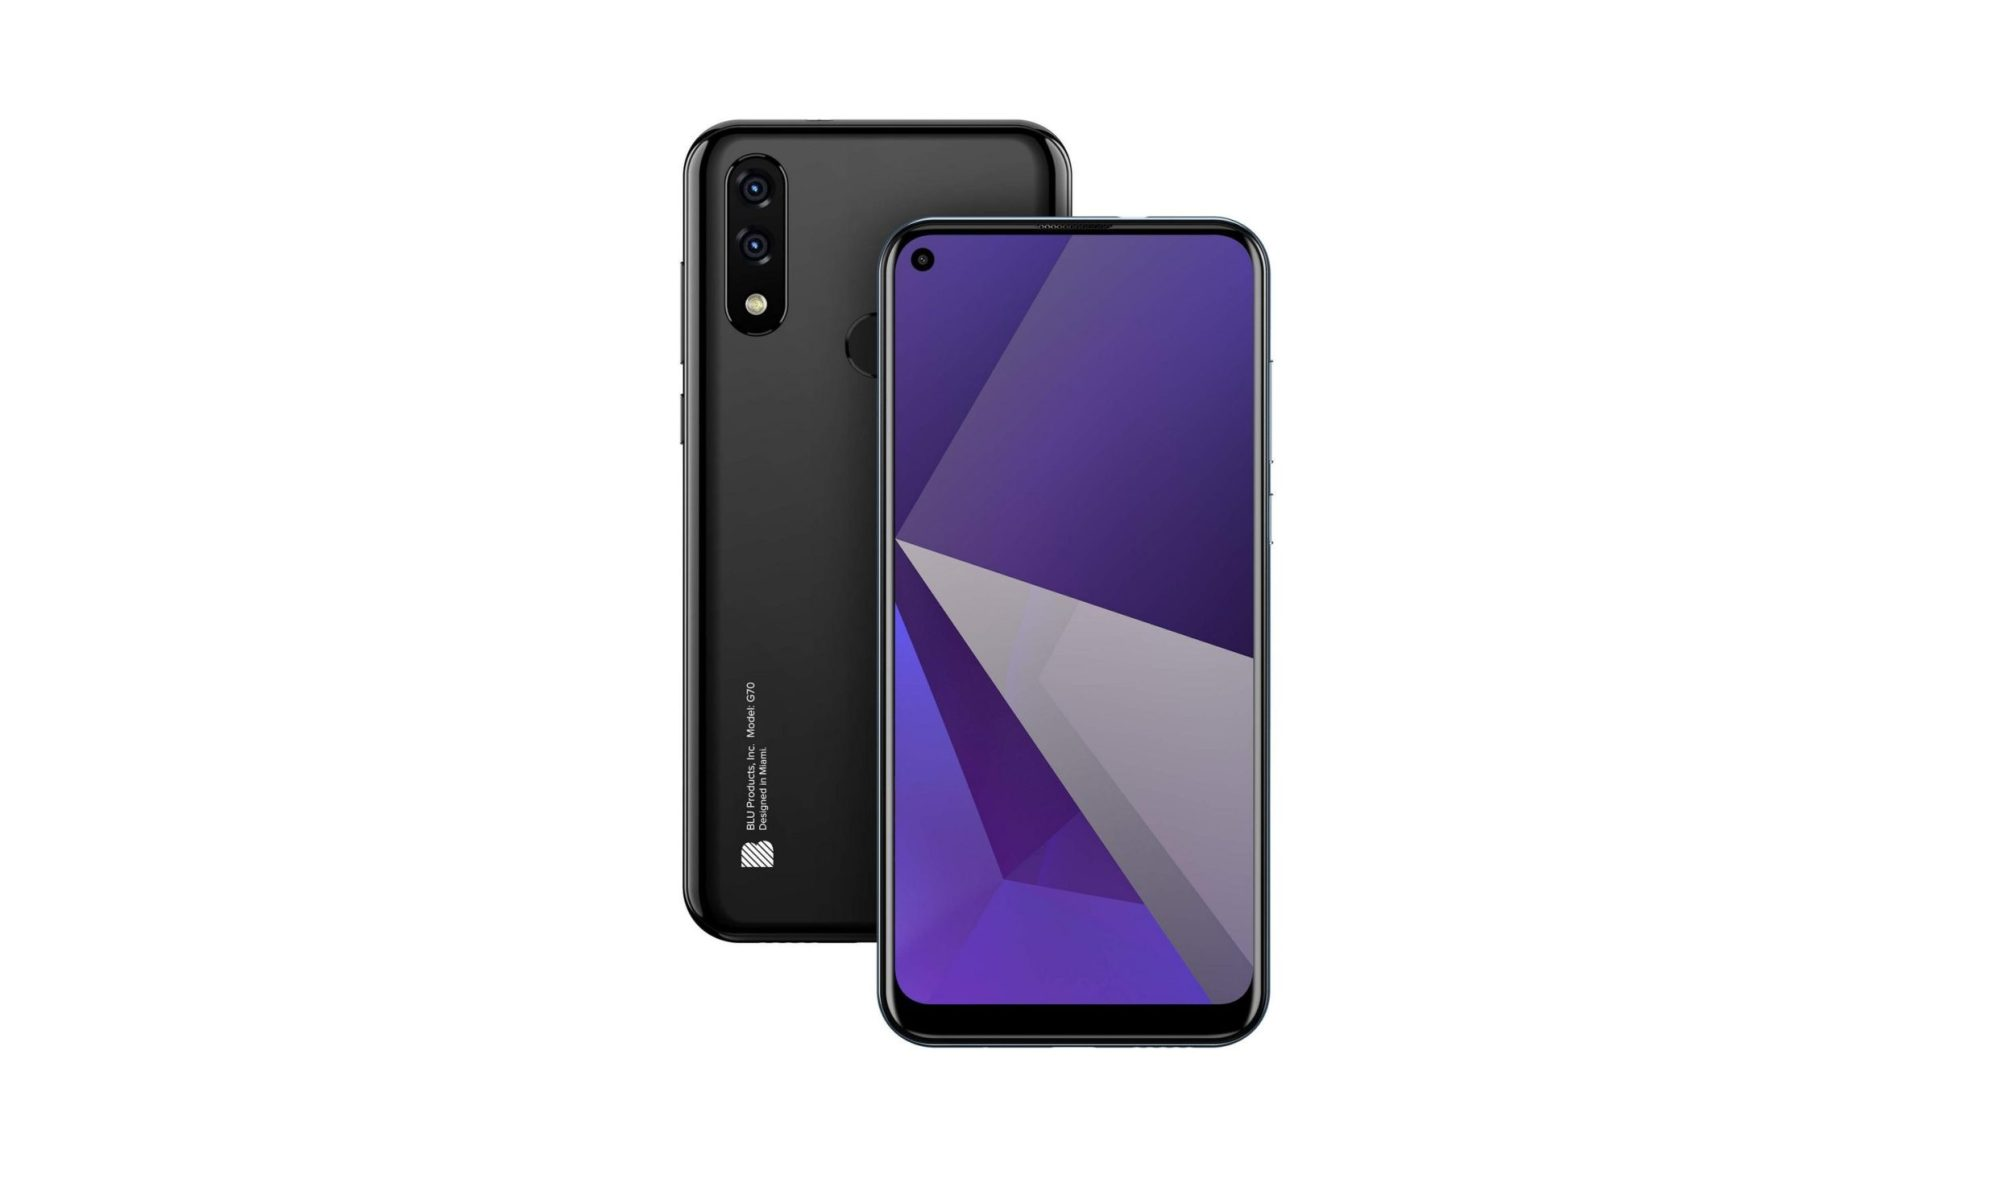 How to Root BLU G70 with Magisk without TWRP